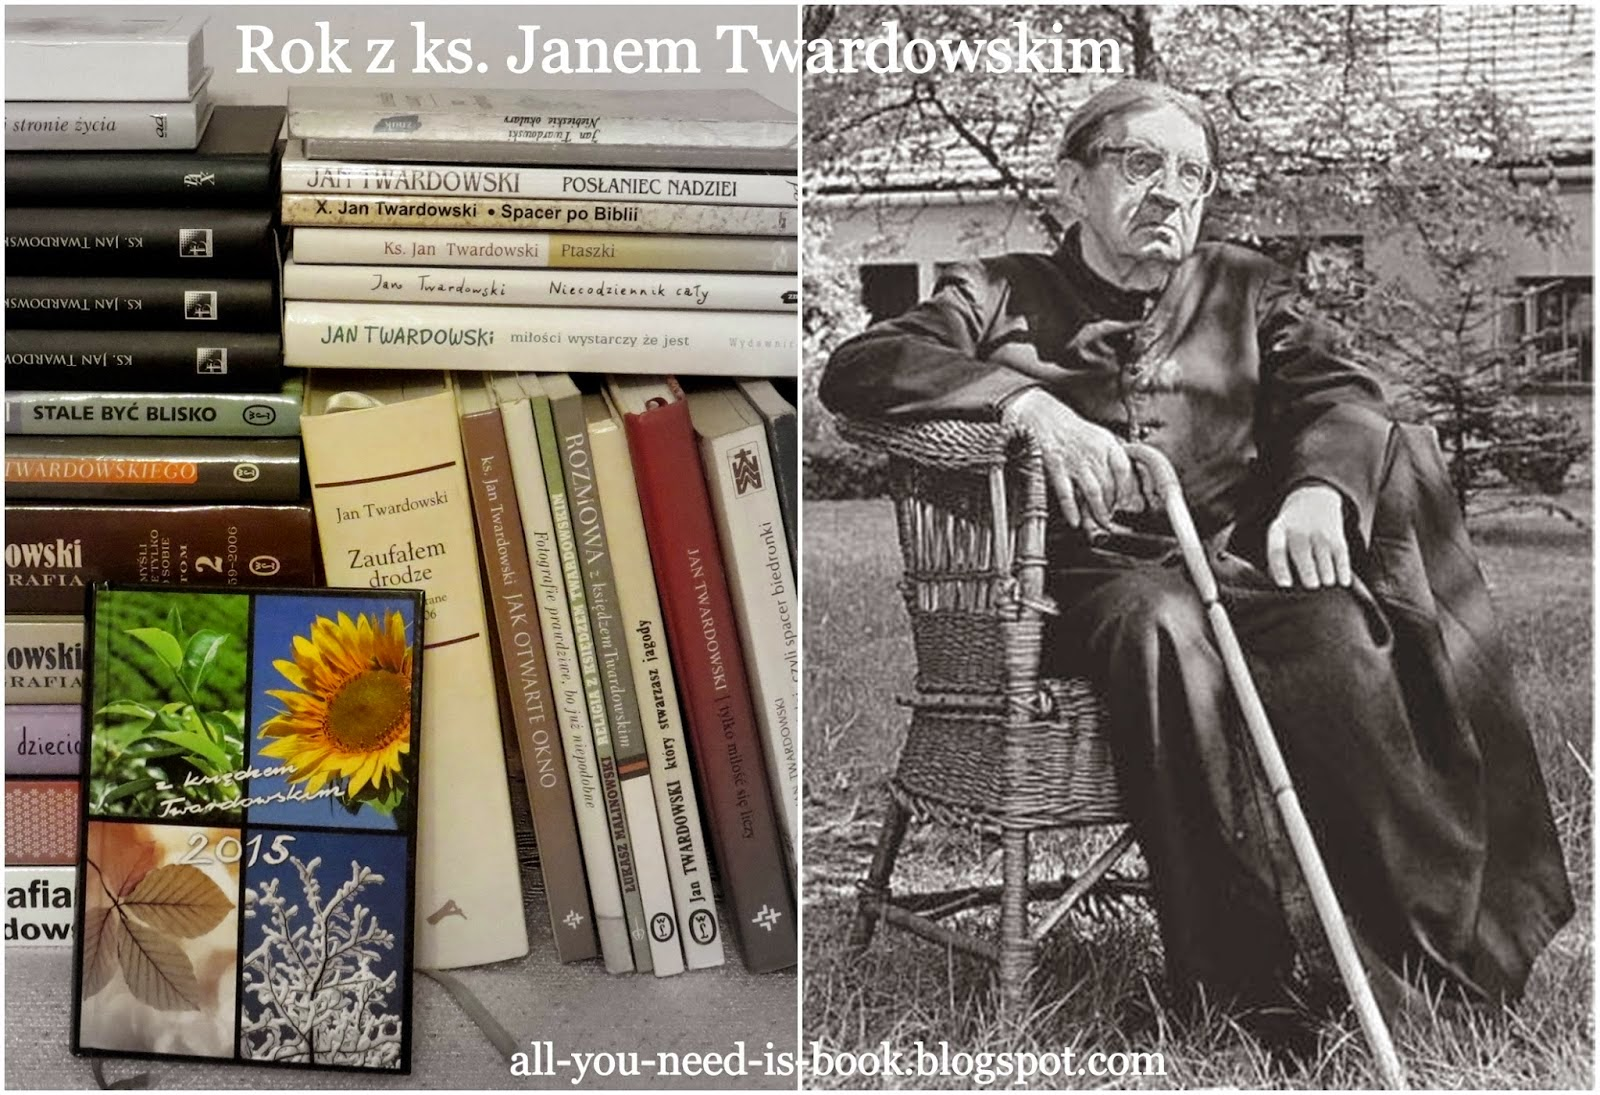 http://all-you-need-is-book.blogspot.com/search/label/Rok%20z%20ks.%20Janem%20Twardowskim